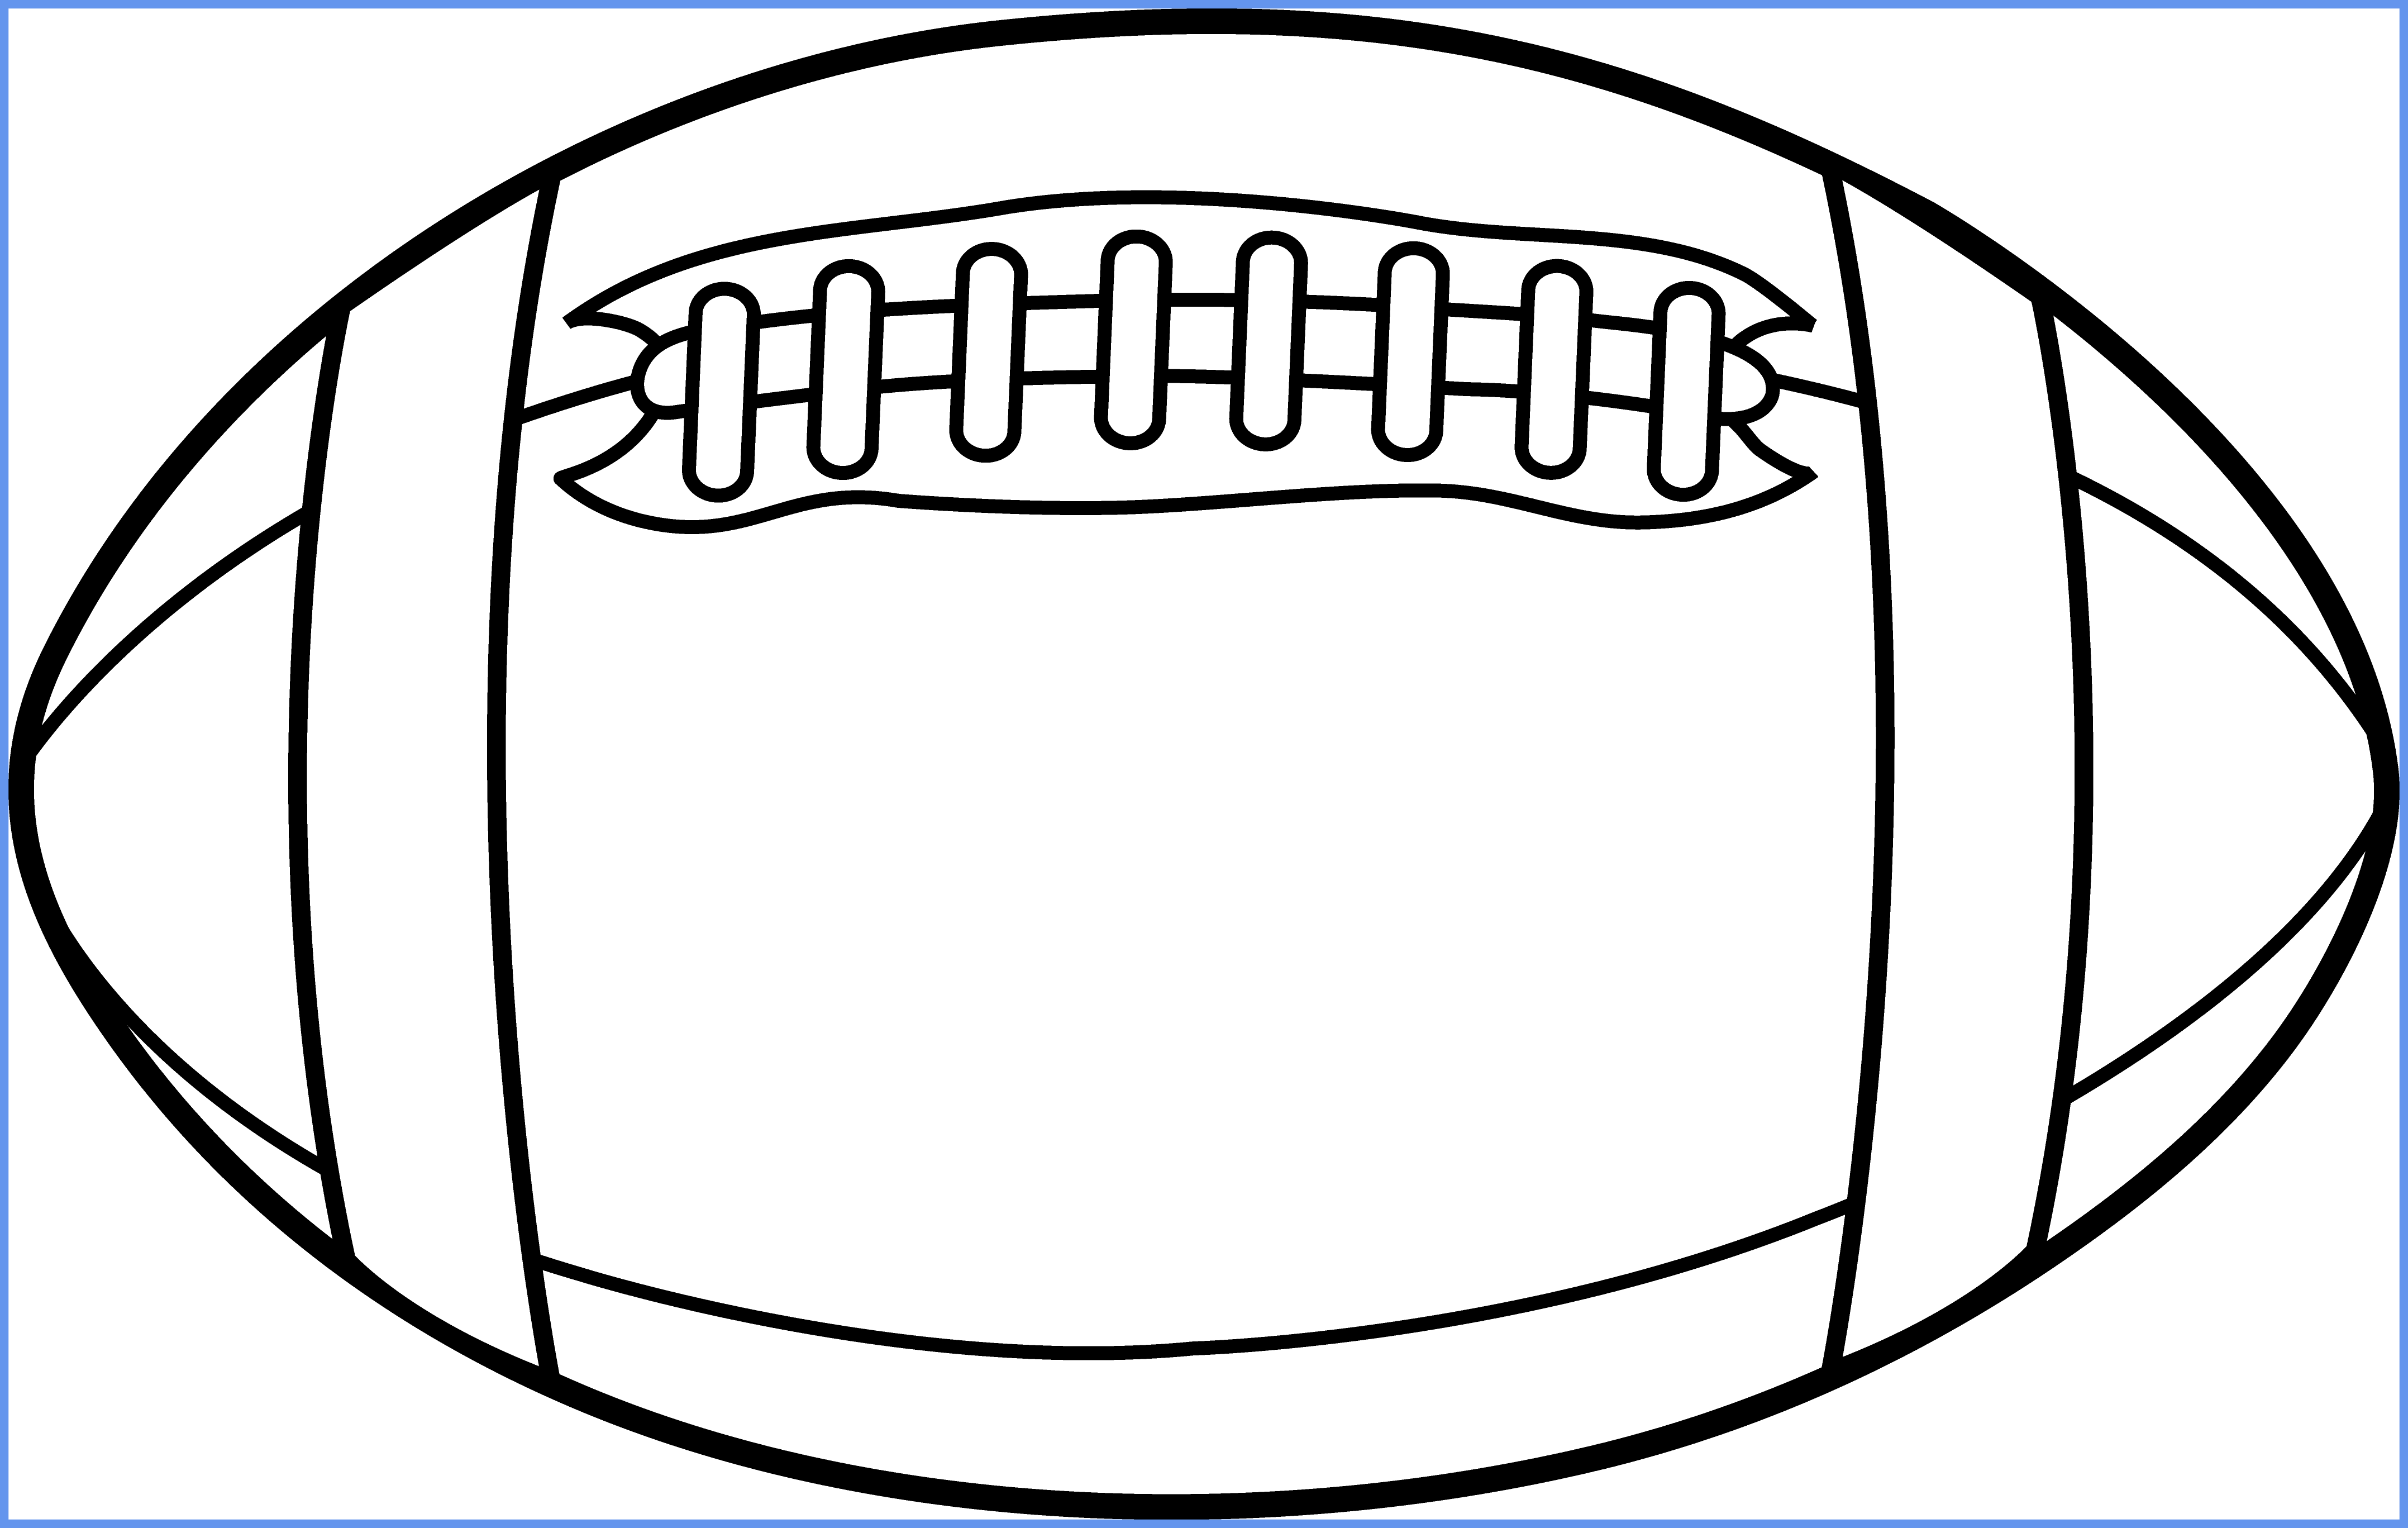 Field goal football clipart picture library stock Marvelous Football Field Clipart Black And White Panda Pics For ... picture library stock